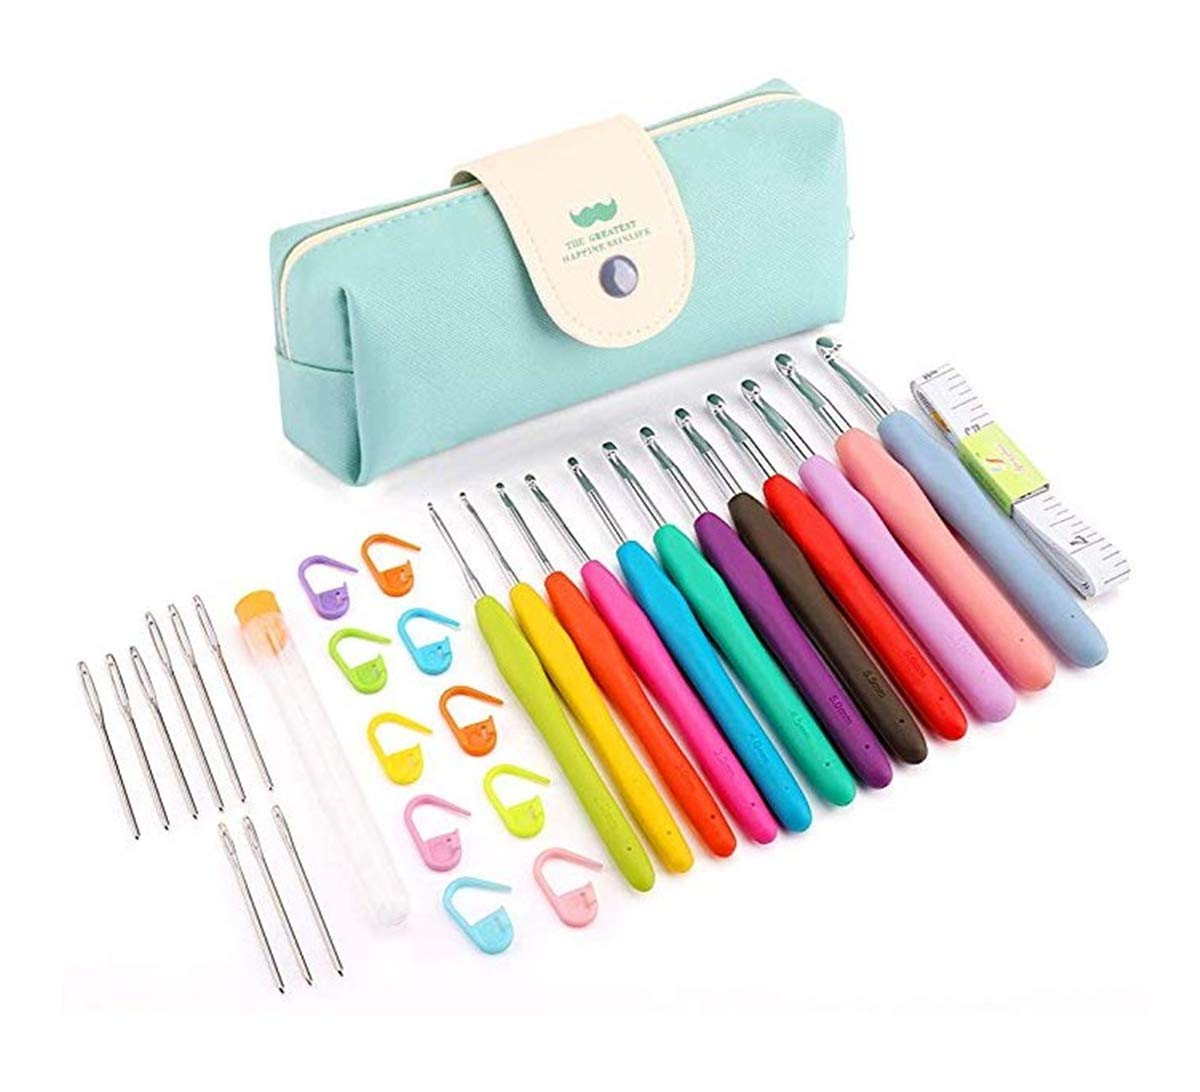 Ergonomic Crochet Hooks Kit,Euow Crochet Handles Set with Case,Large-Eye Blunt Needles,Yarn Needles, Knitting Clips- Best Gift for Women,Mom,Girl,Adults (Crochet Hooks Kit) EUOW0103